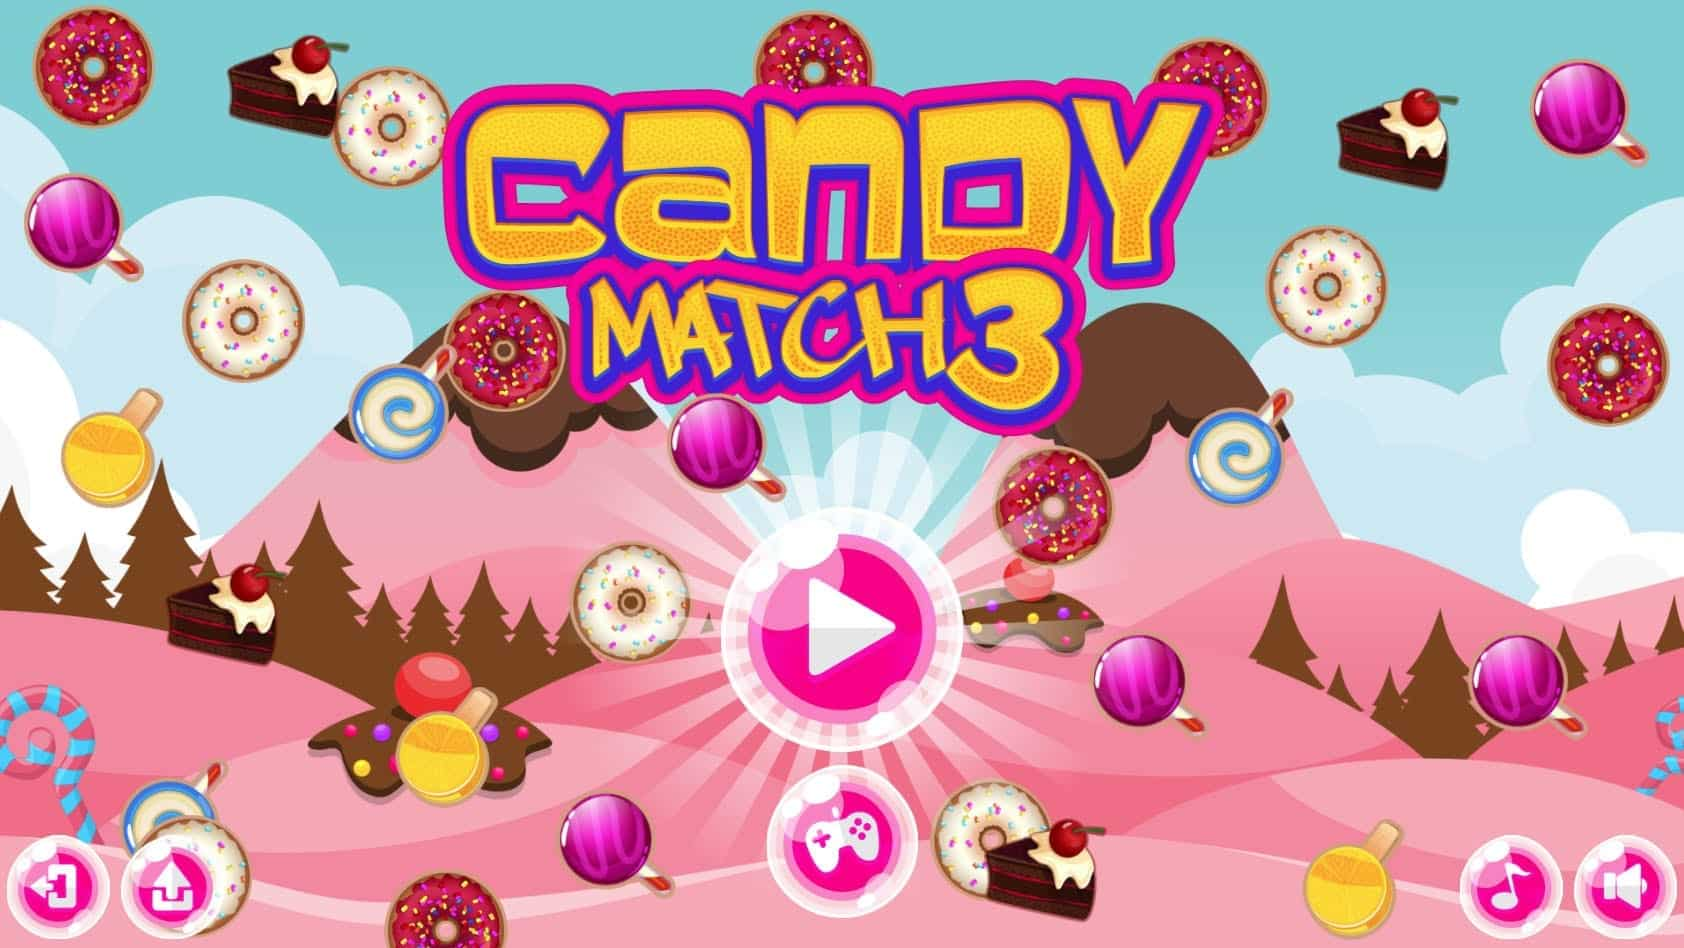 Candy Match 3 Game